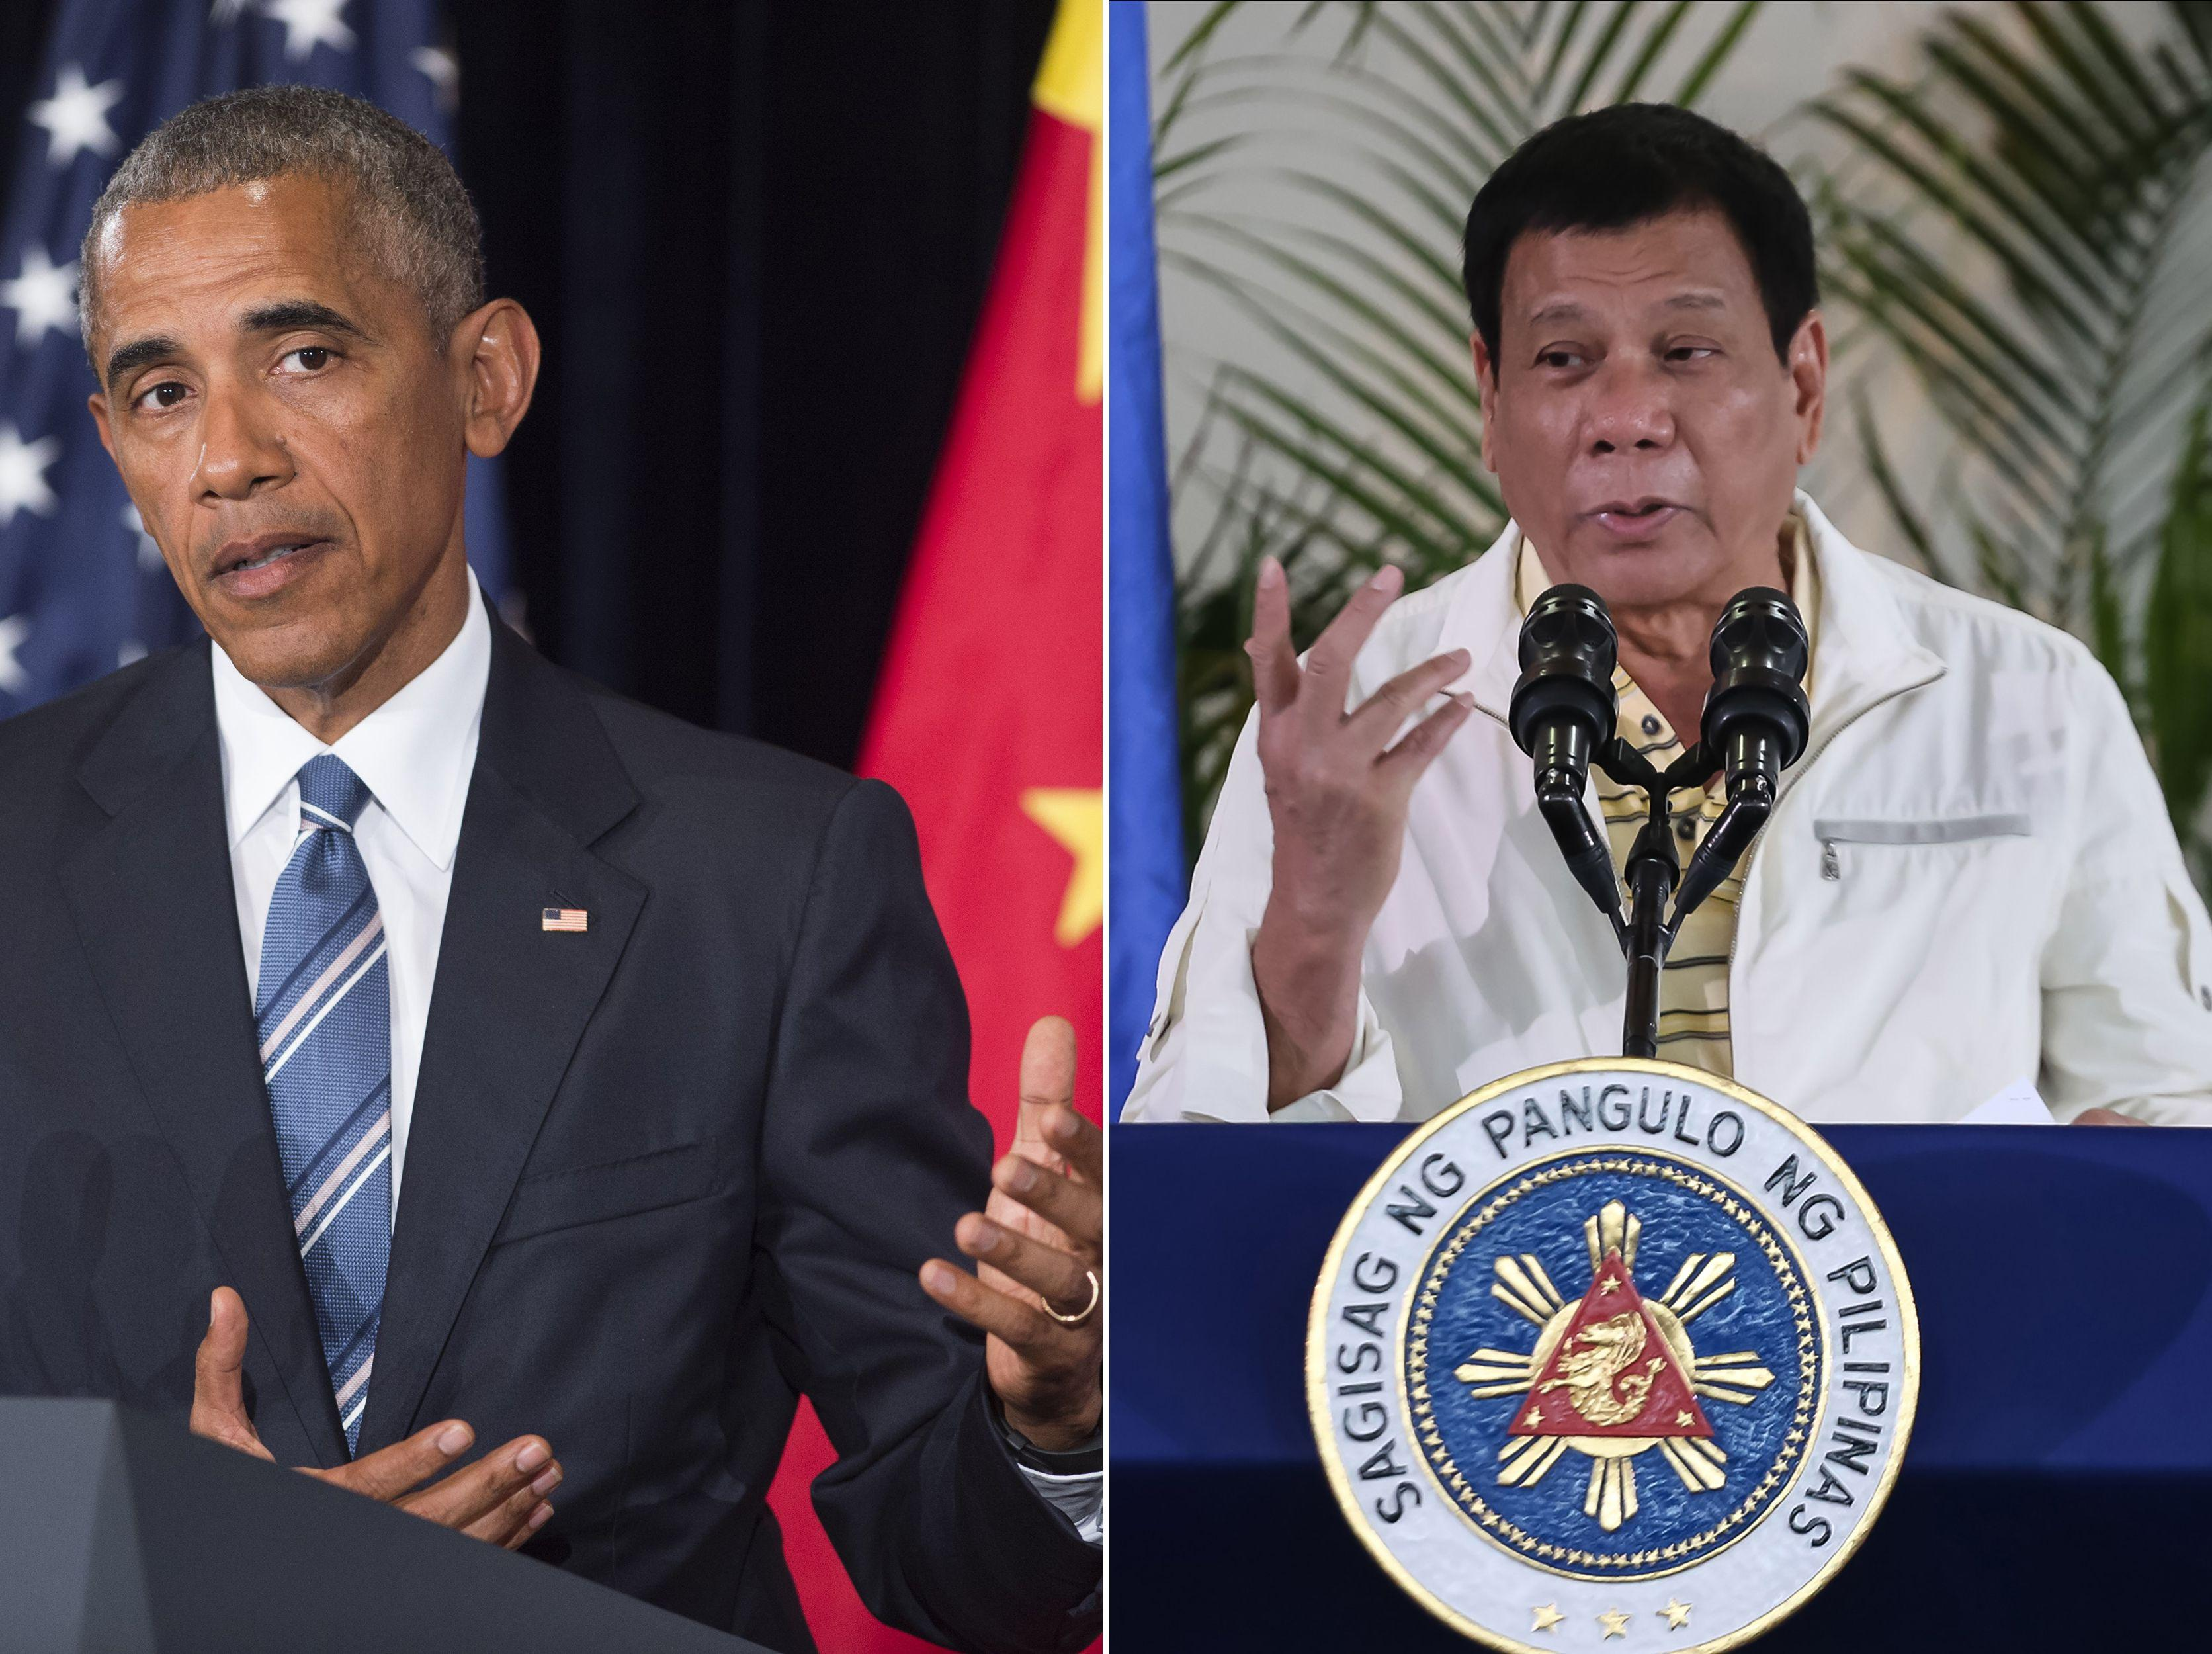 Barack Obama and Rodrigo Duterte